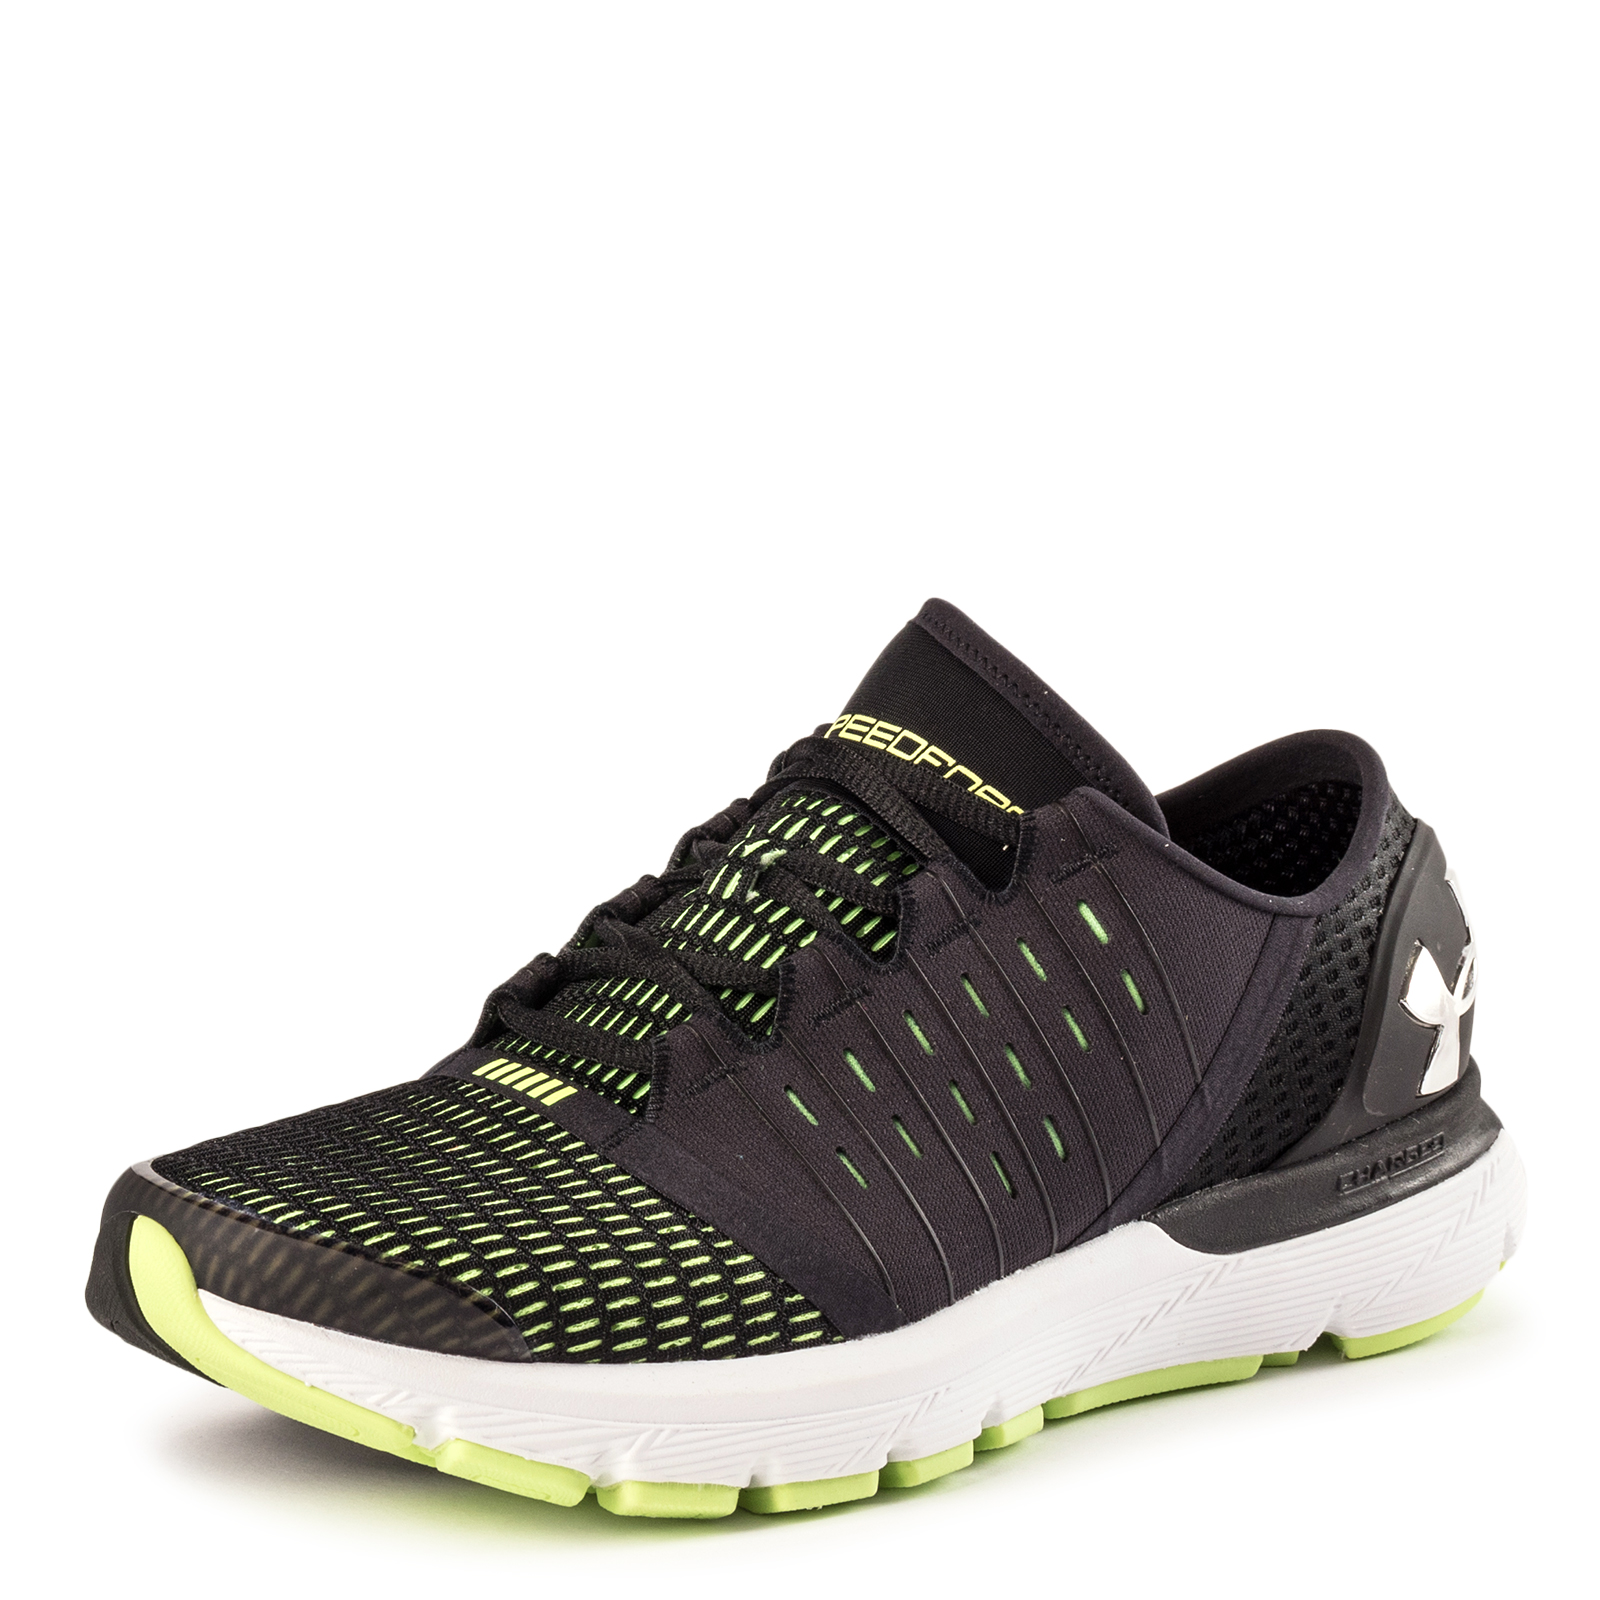 available from 10.11 Under Armour running shoes men  1285653-003 men outdoor tactical camping men s climbing mountain boots hiking shoes